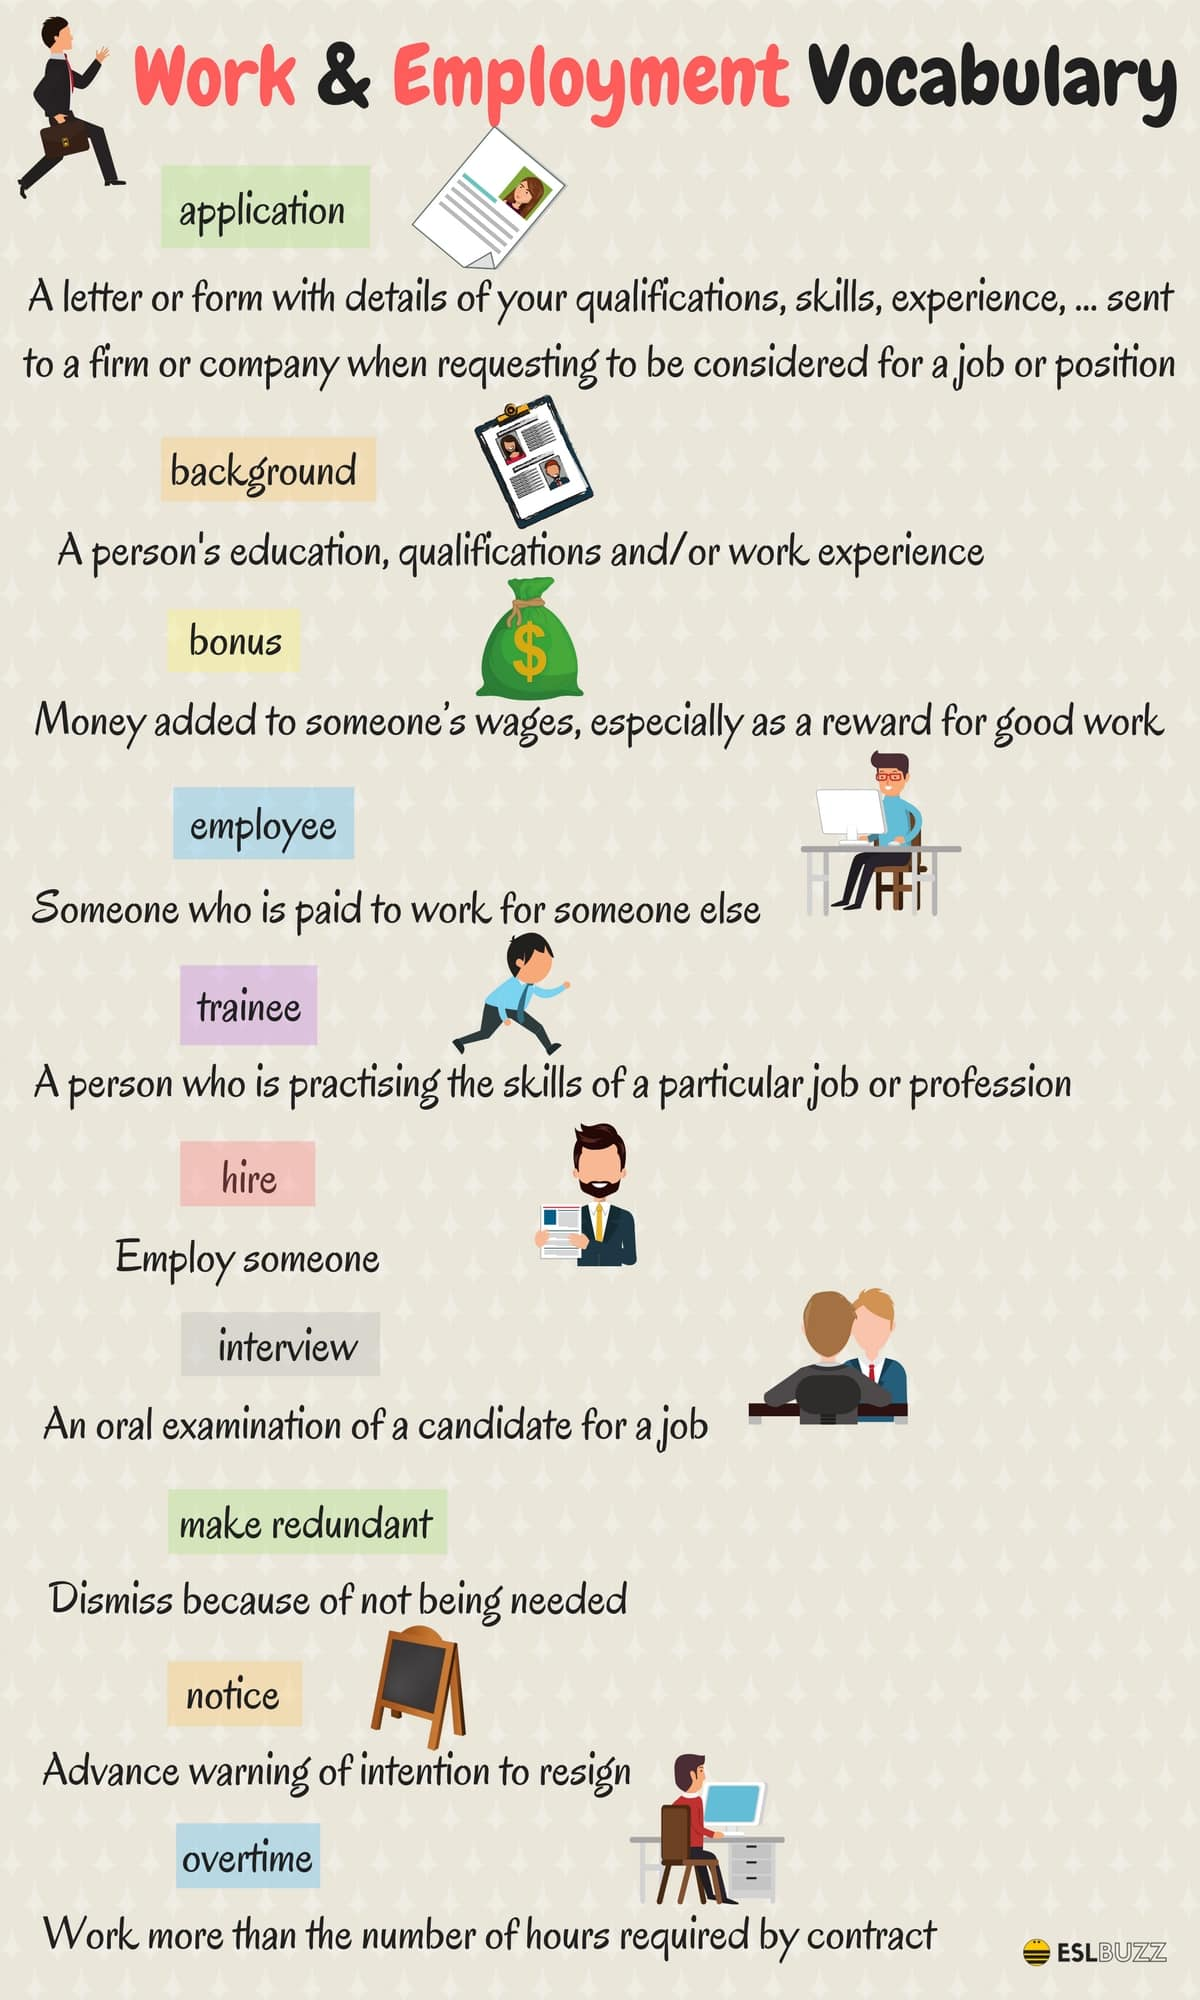 Expressions about Work and Employment